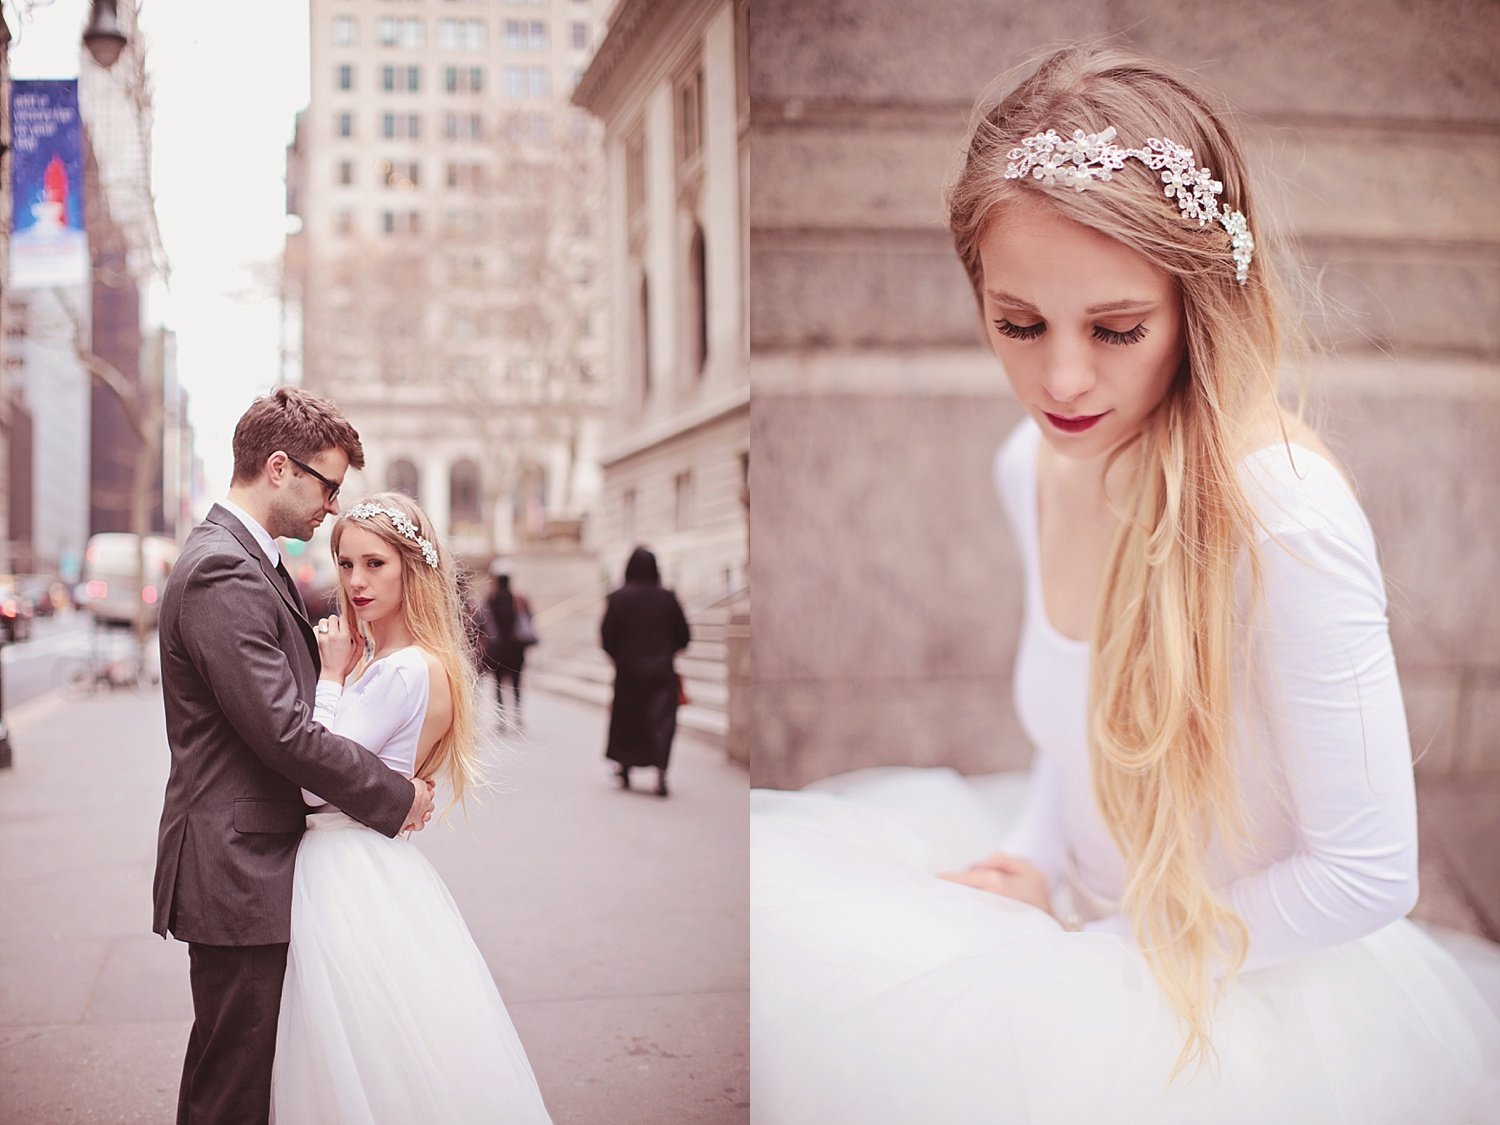 Rachael Burgess wedding pictures in Time Square, New York